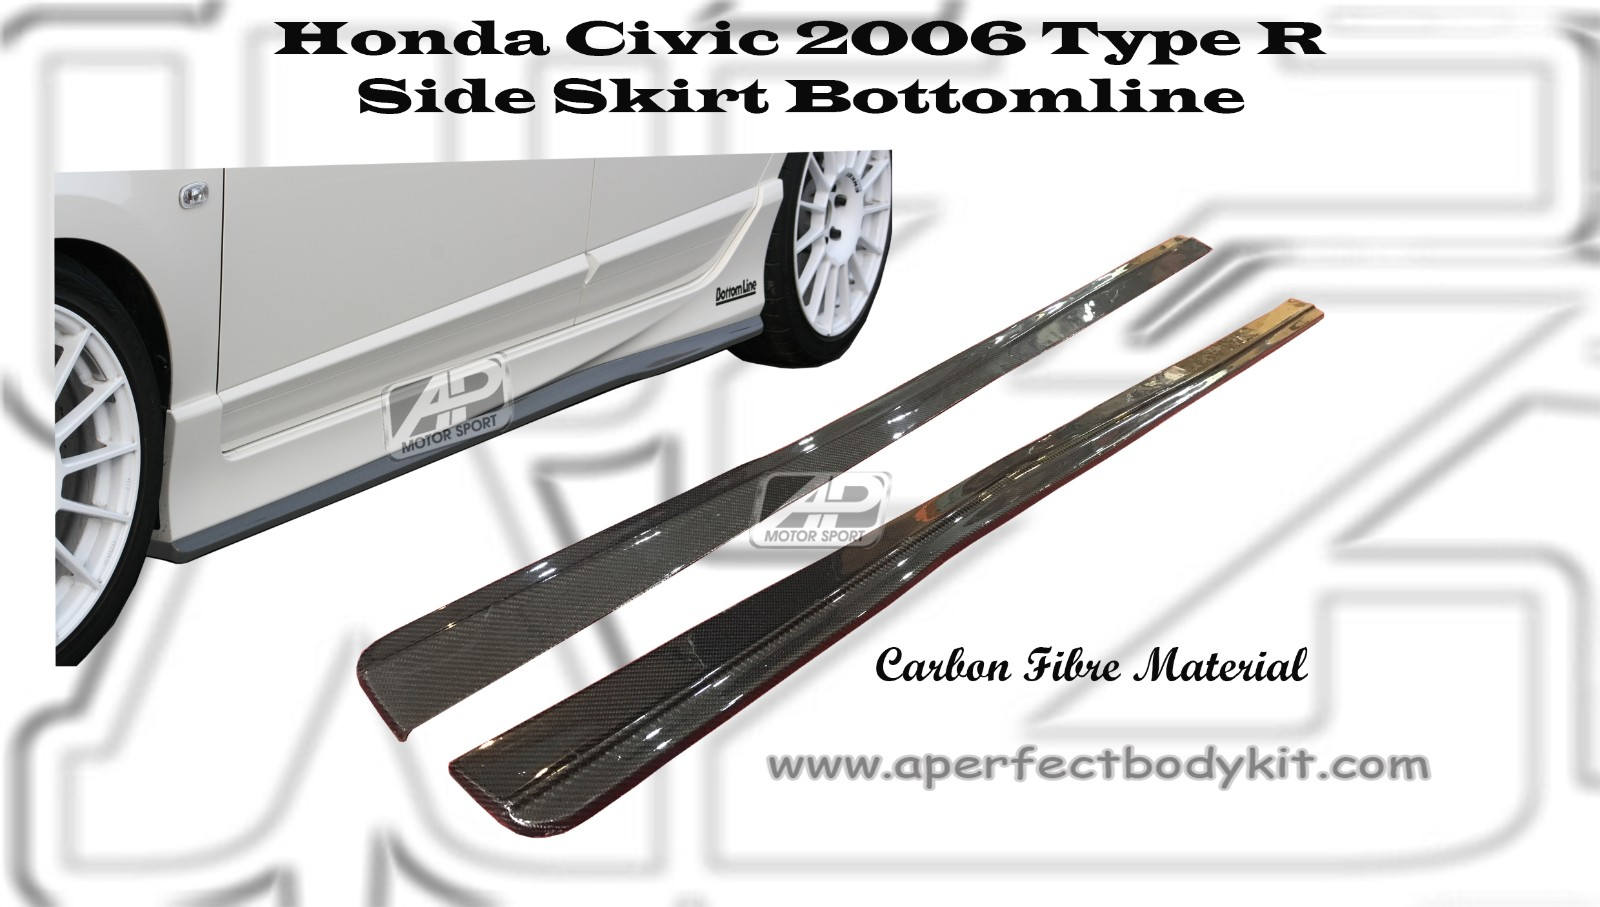 Honda Civic 2006 Type R Side Skirt Bottomline (Carbon Fibre/